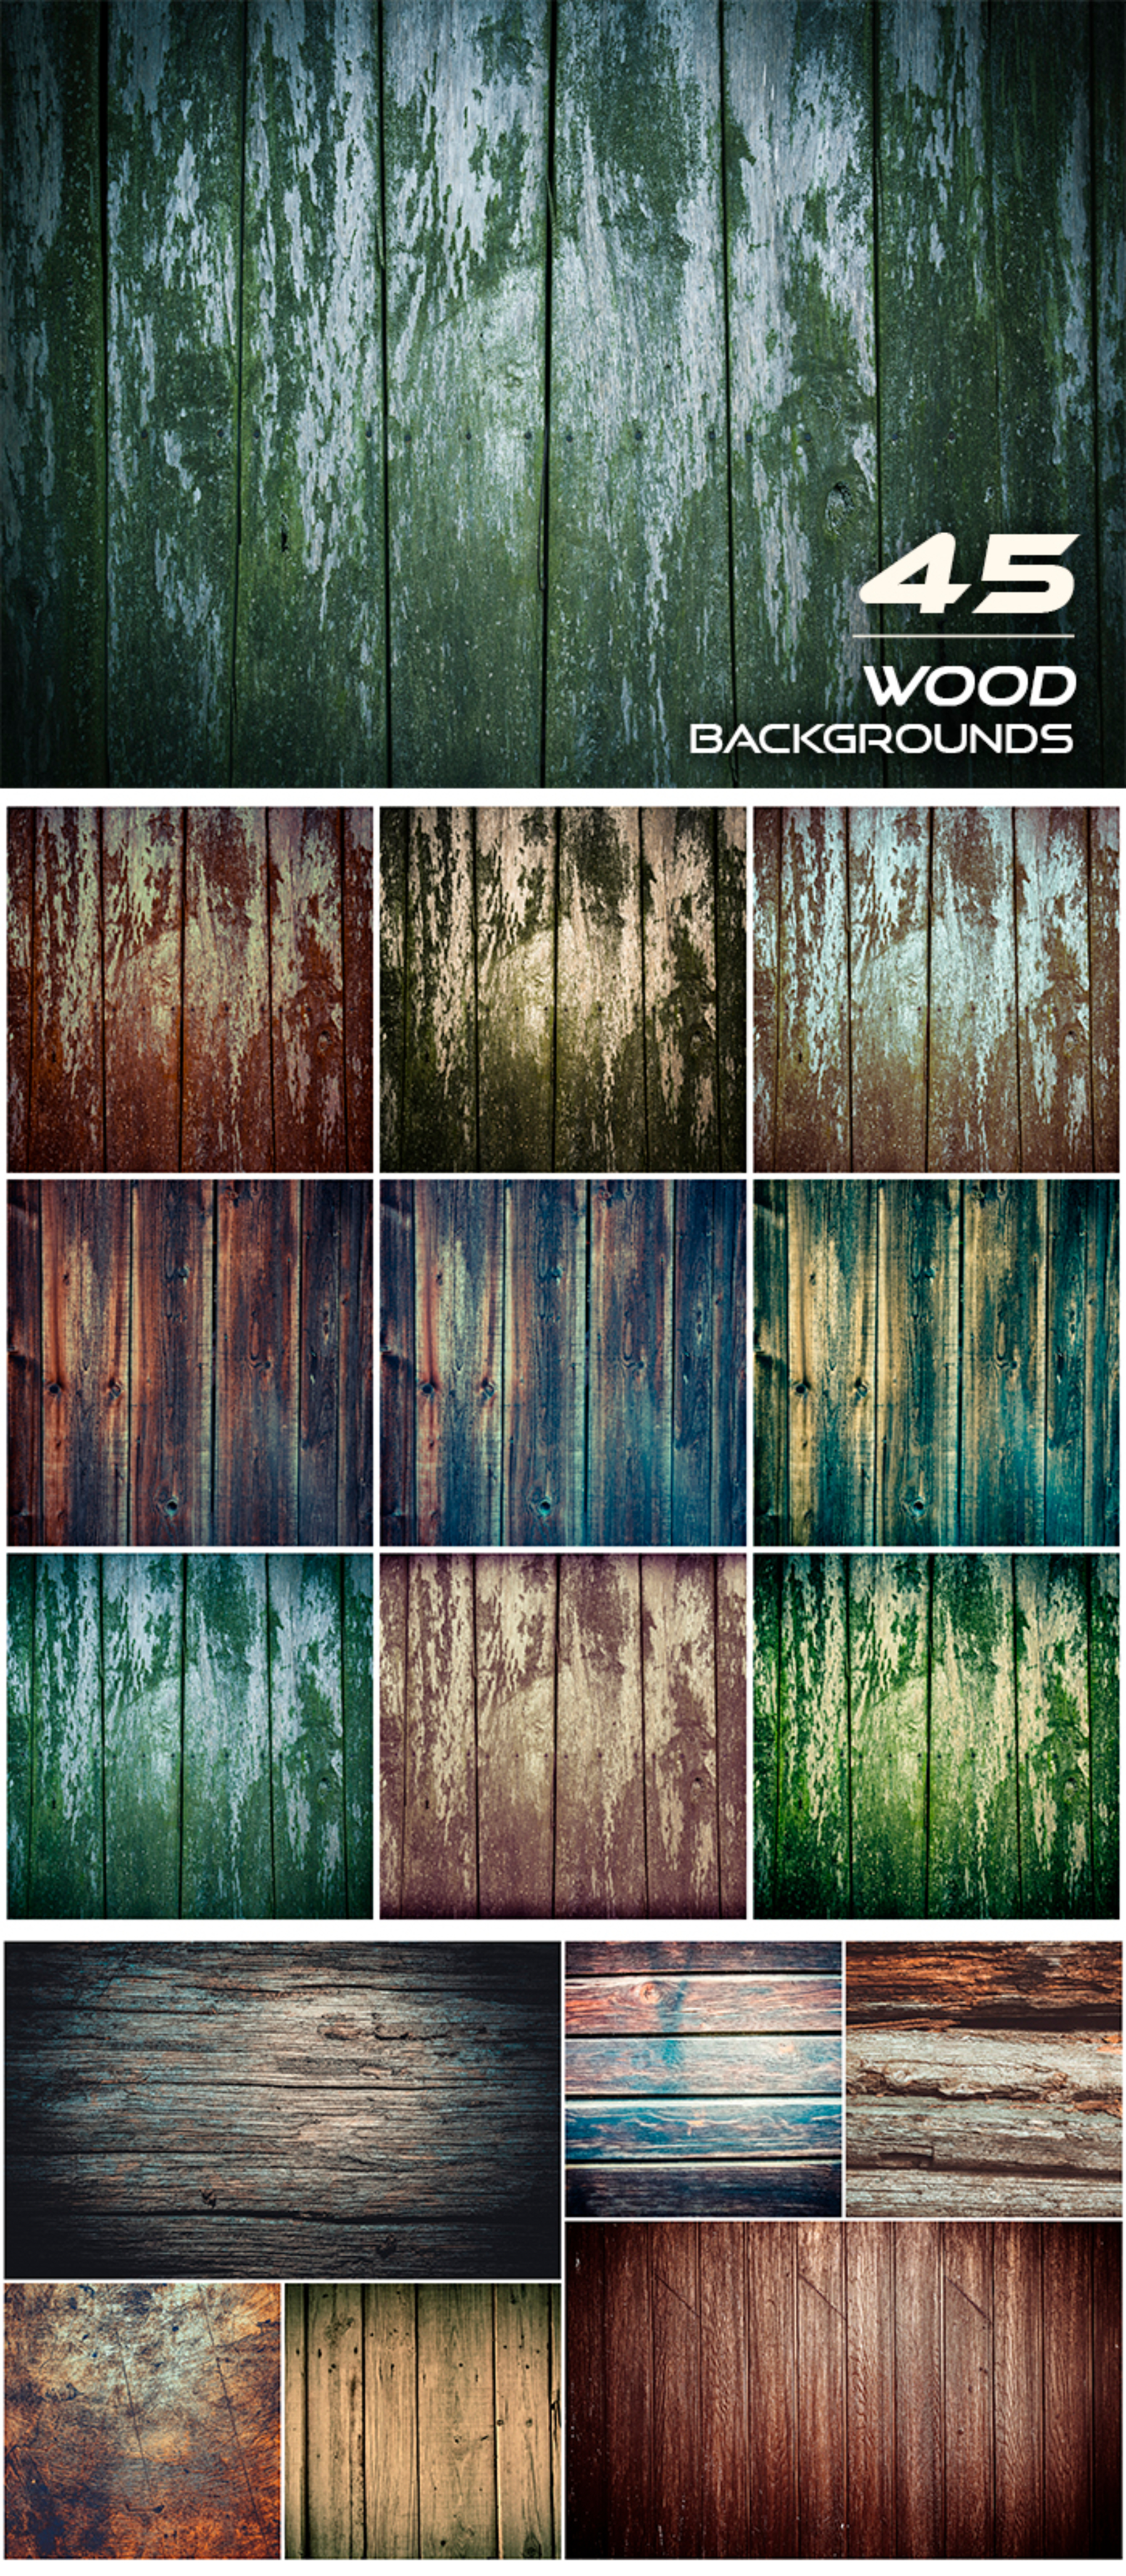 2000 High Resolution Backgrounds Vol.2 example image 4